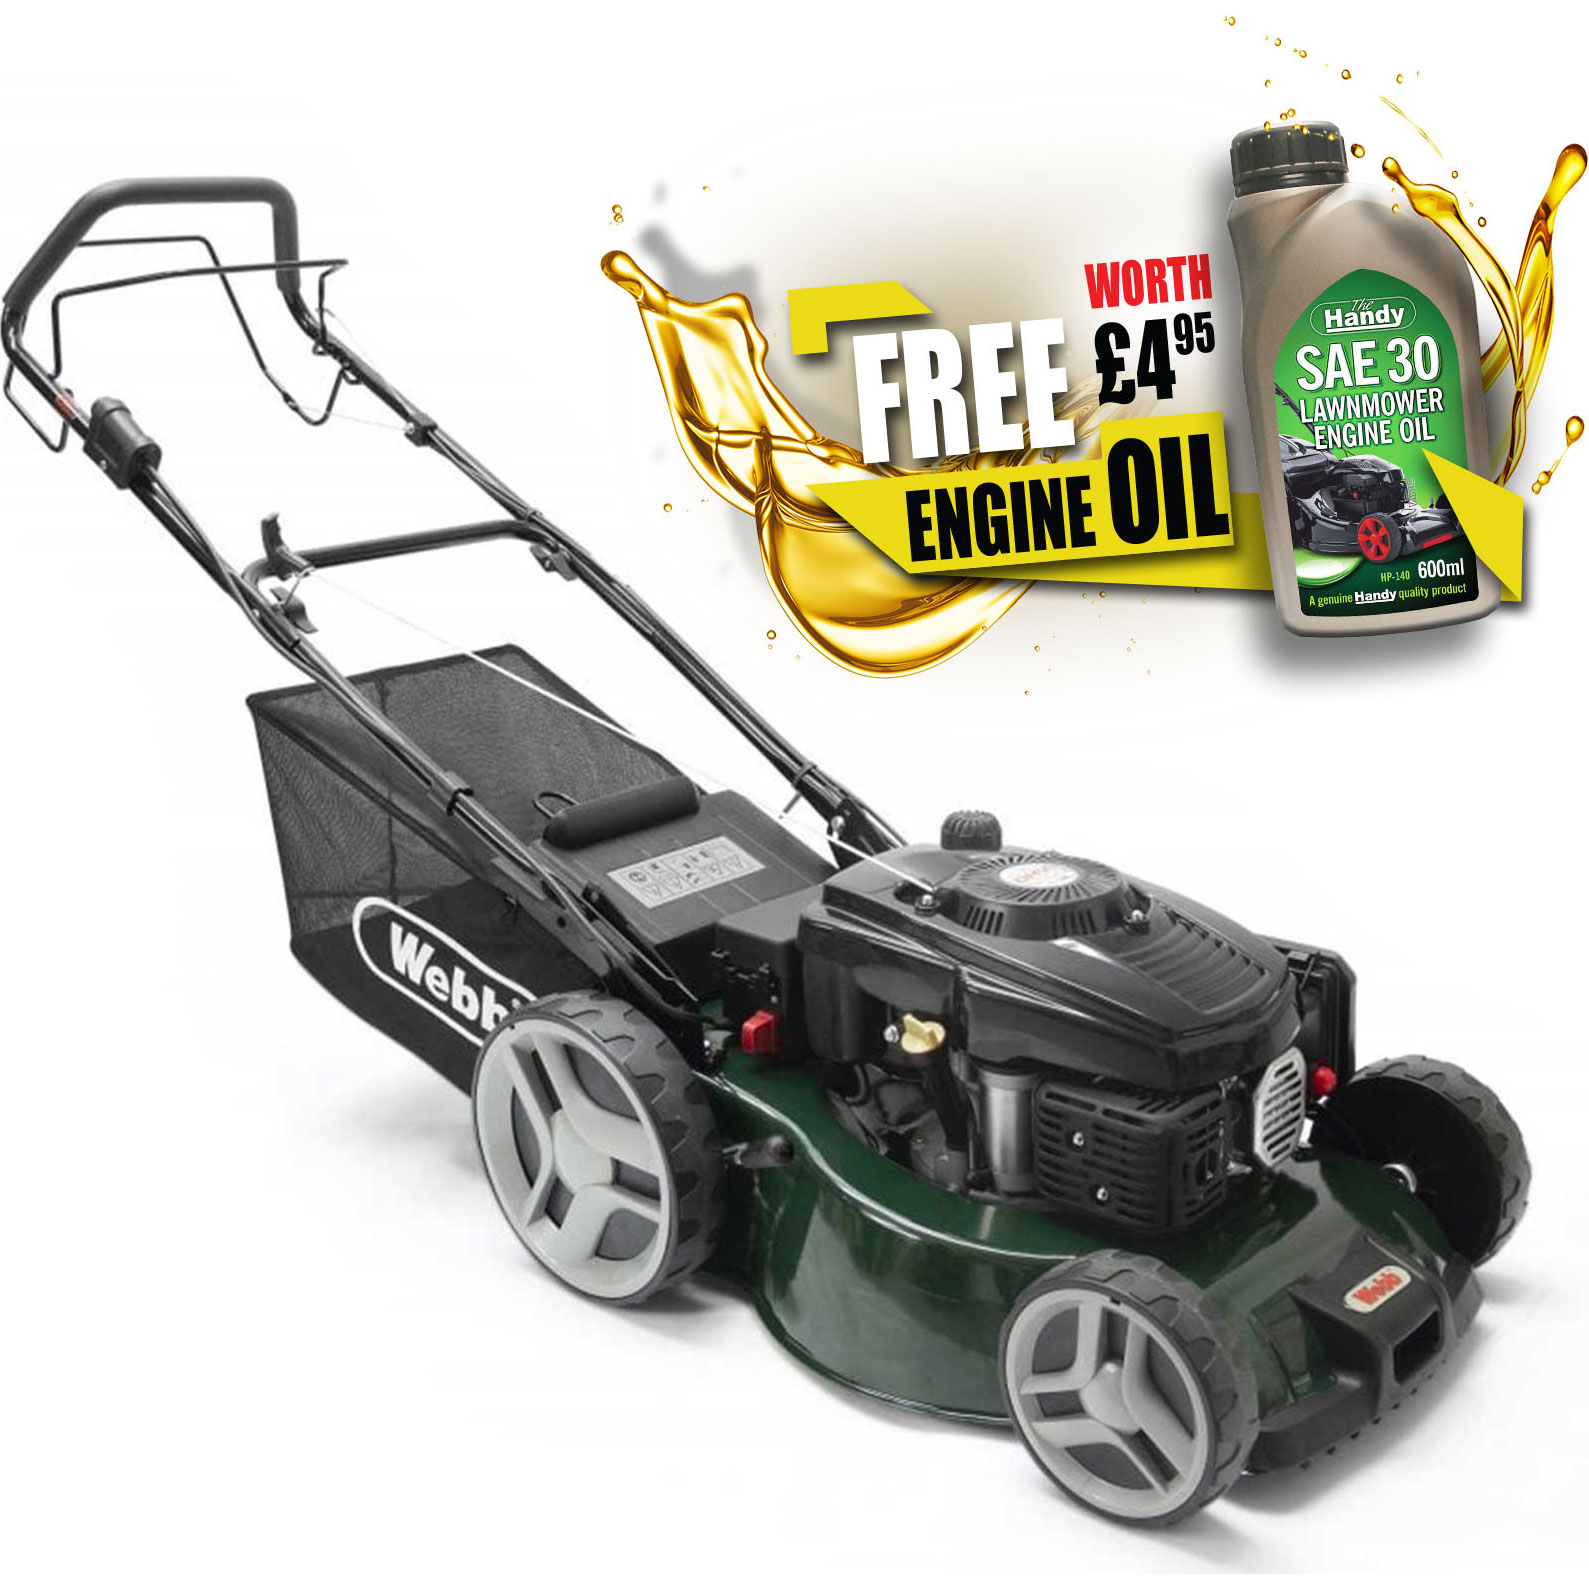 Image of Webb WER460SPES Classic Petrol Self Propelled Rotary Lawnmower 460mm FREE Engine Oil Worth £4.95